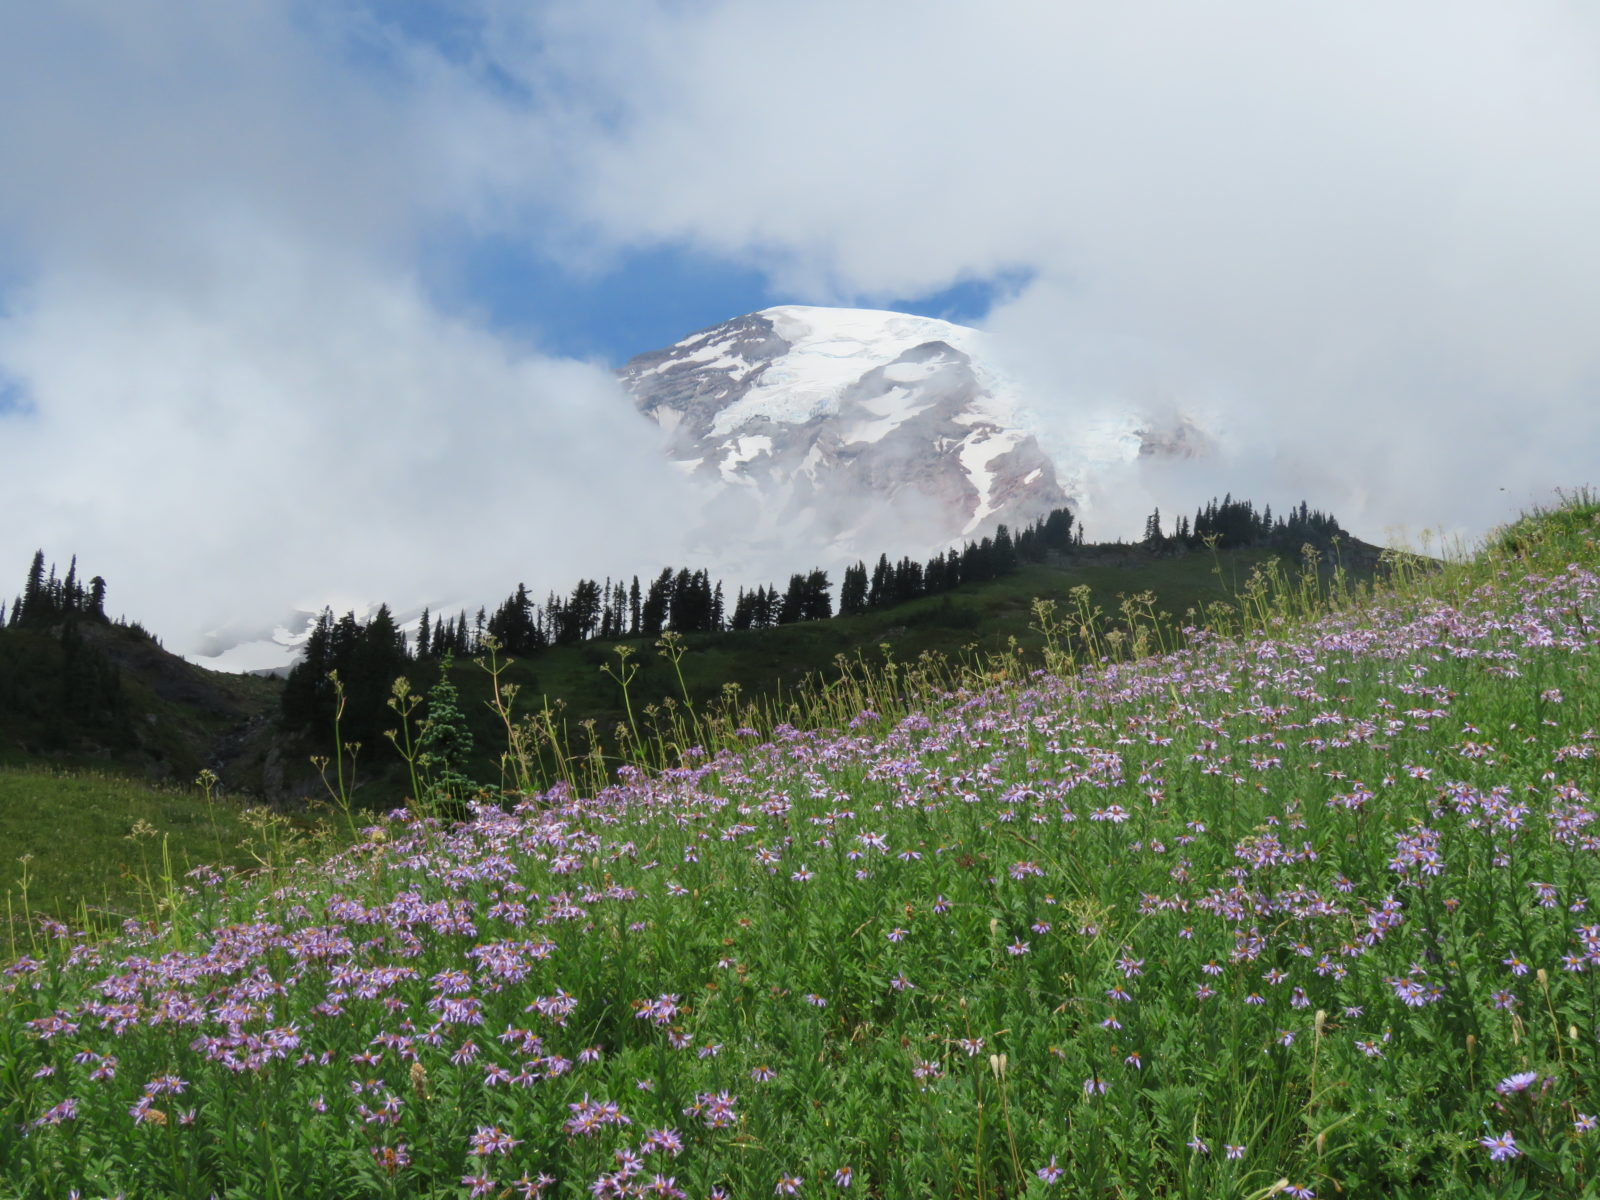 The Heavens Opening in Paradise (Mount Rainier)